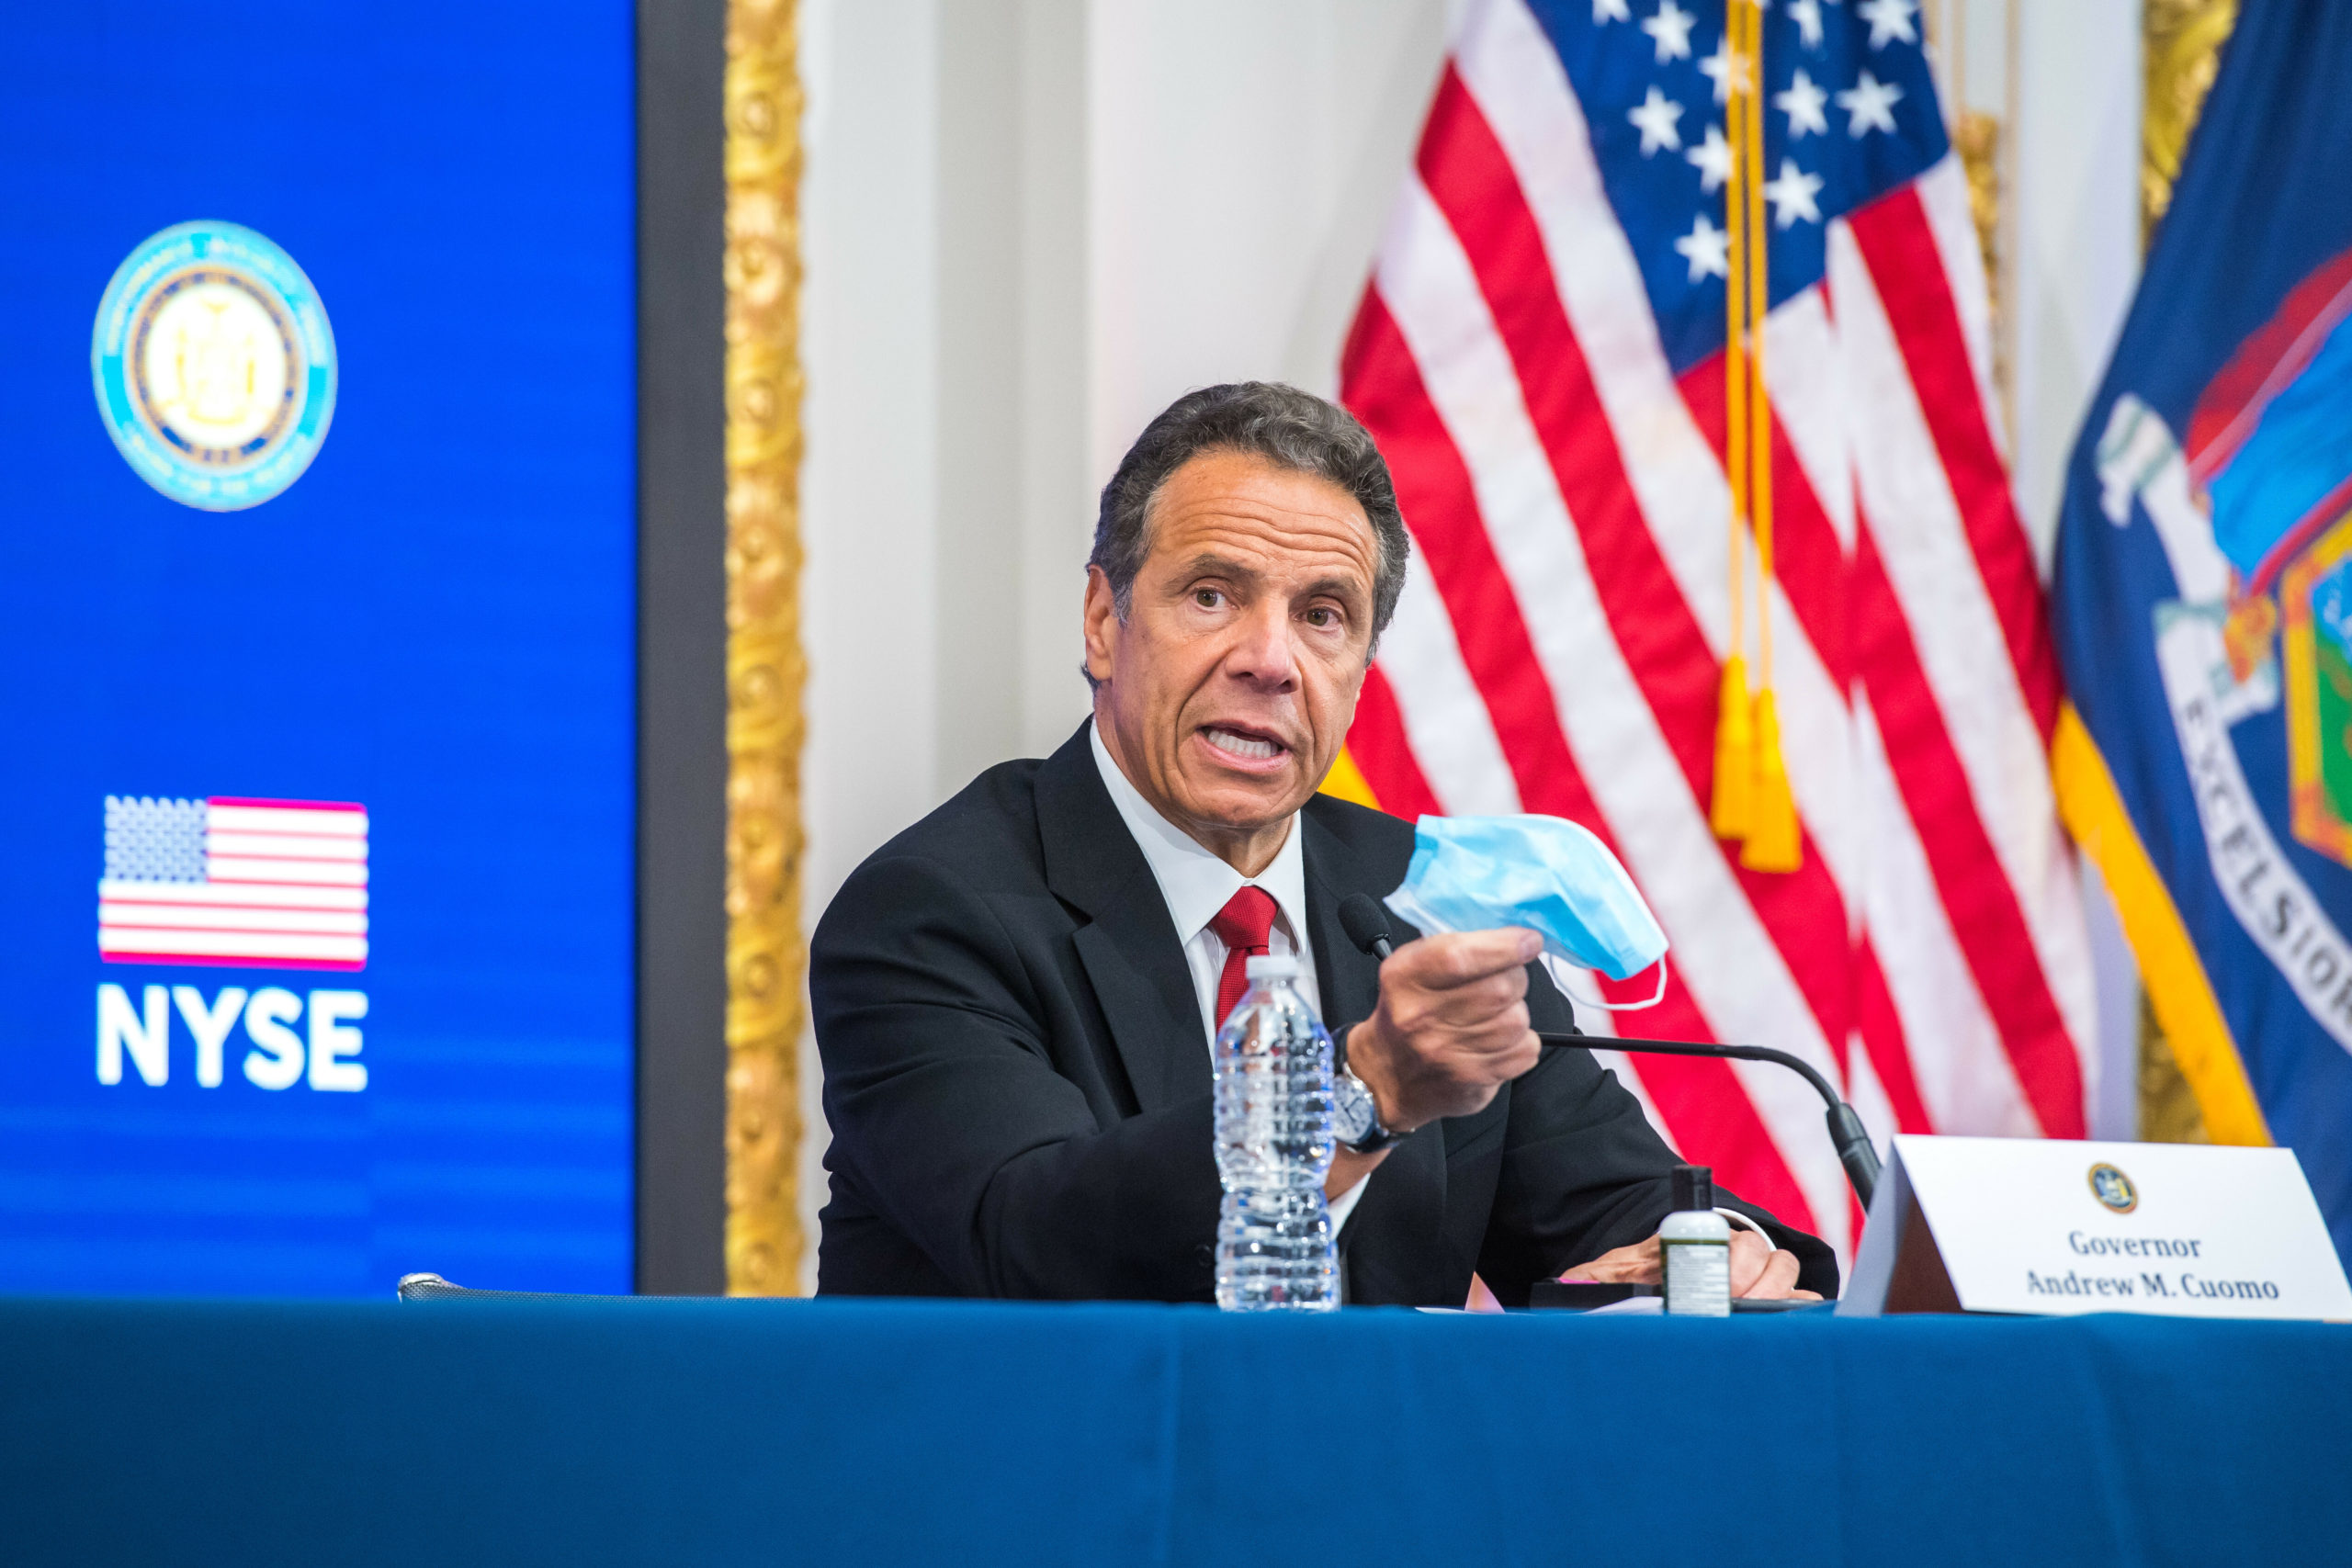 Annoucing the reopening of Long Island from The New York Stock Exchange Tuesday, Governor Andrew Cuomo reminded New Yorkers to wear masks.